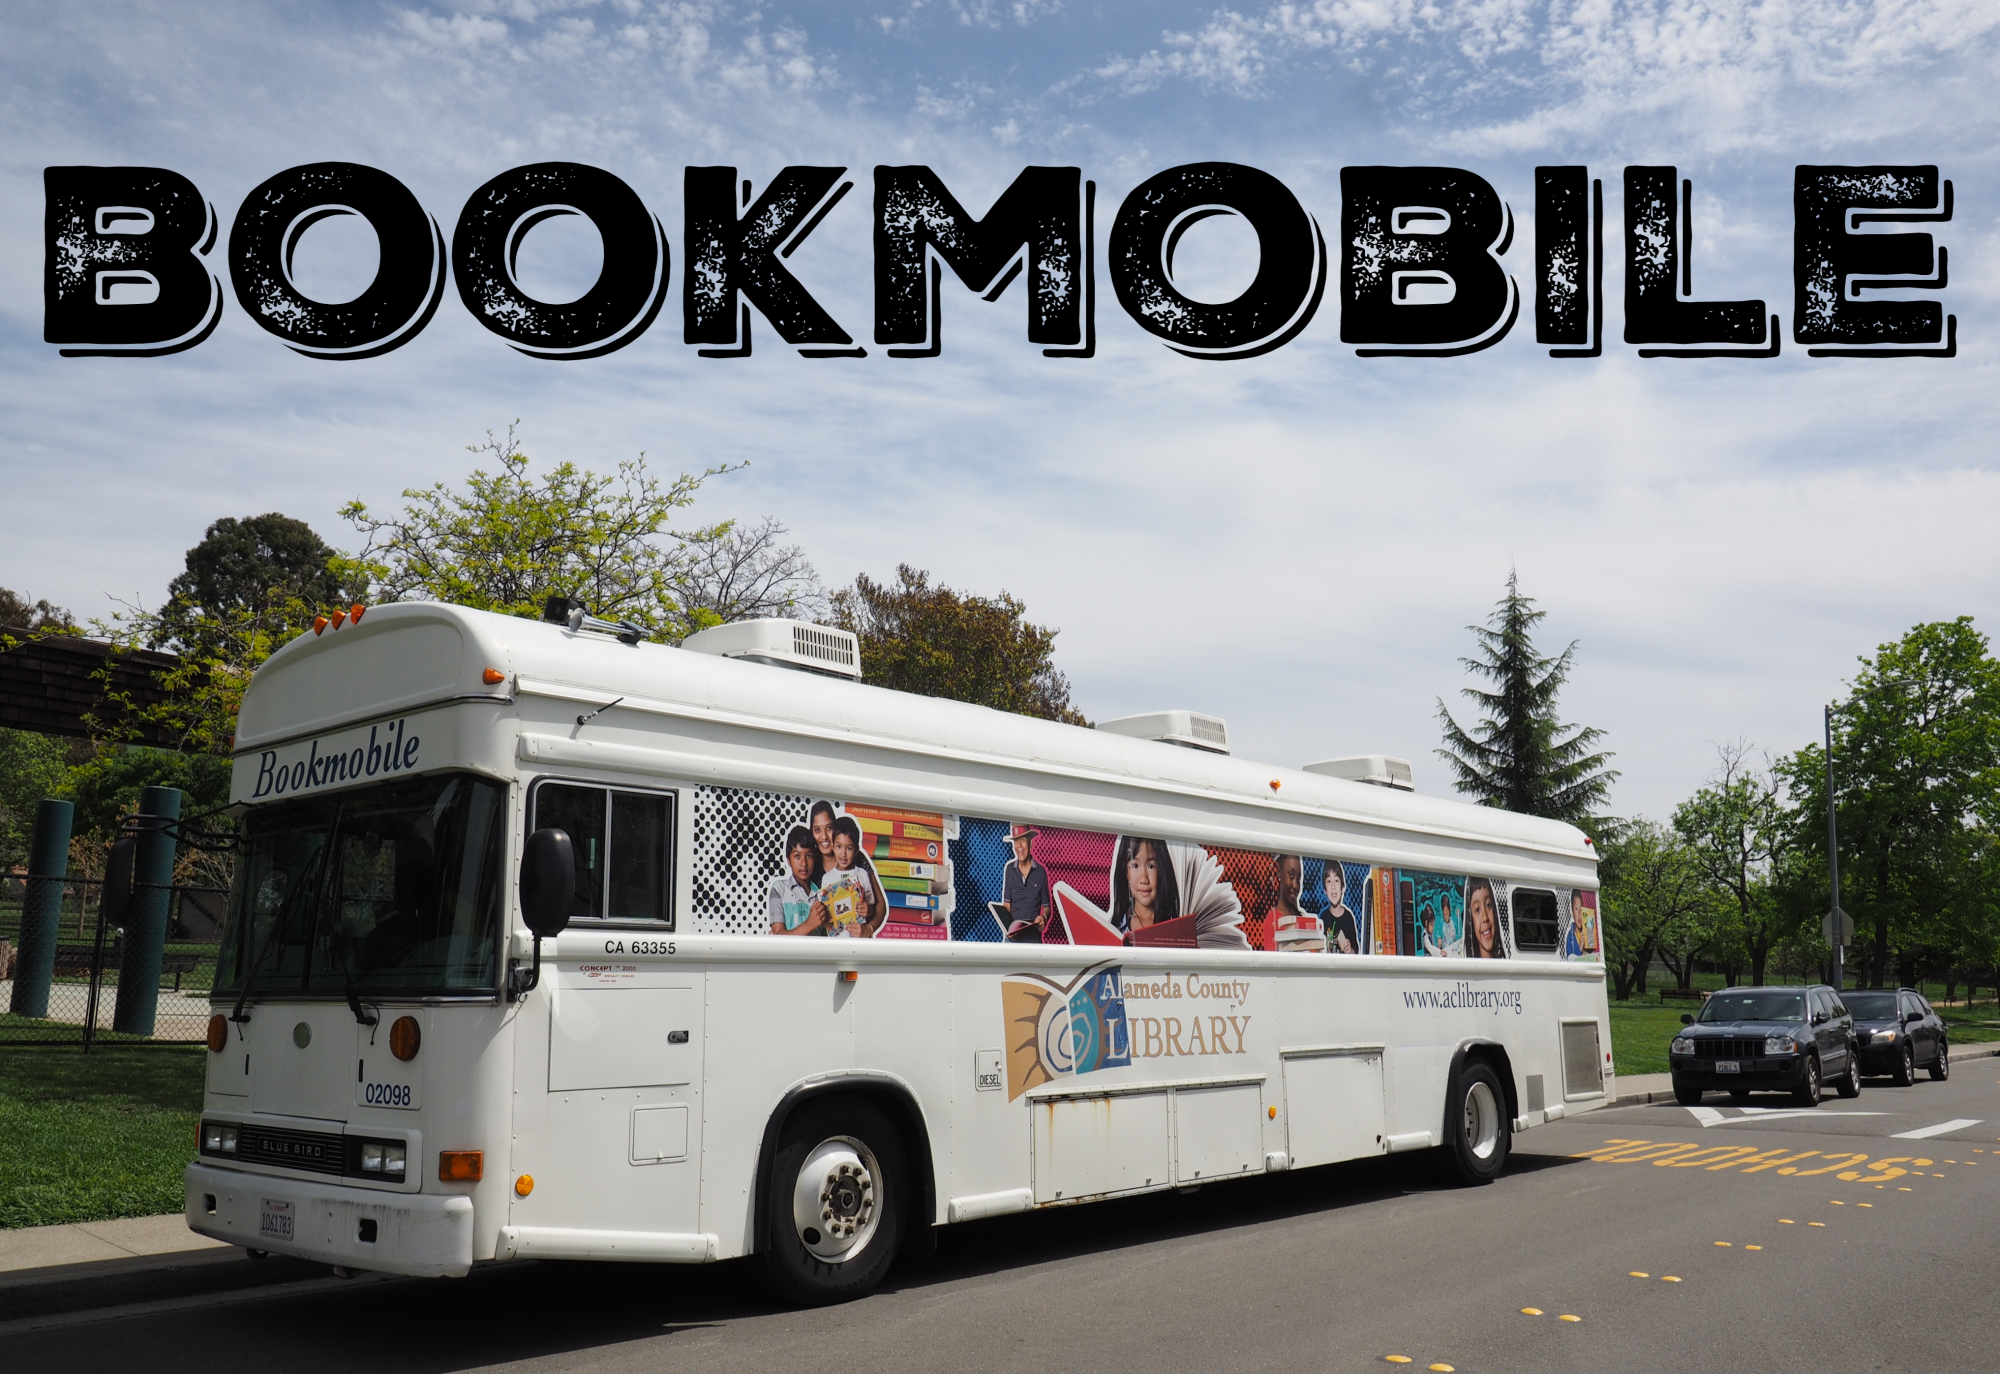 Booster Park - bookmobile stop